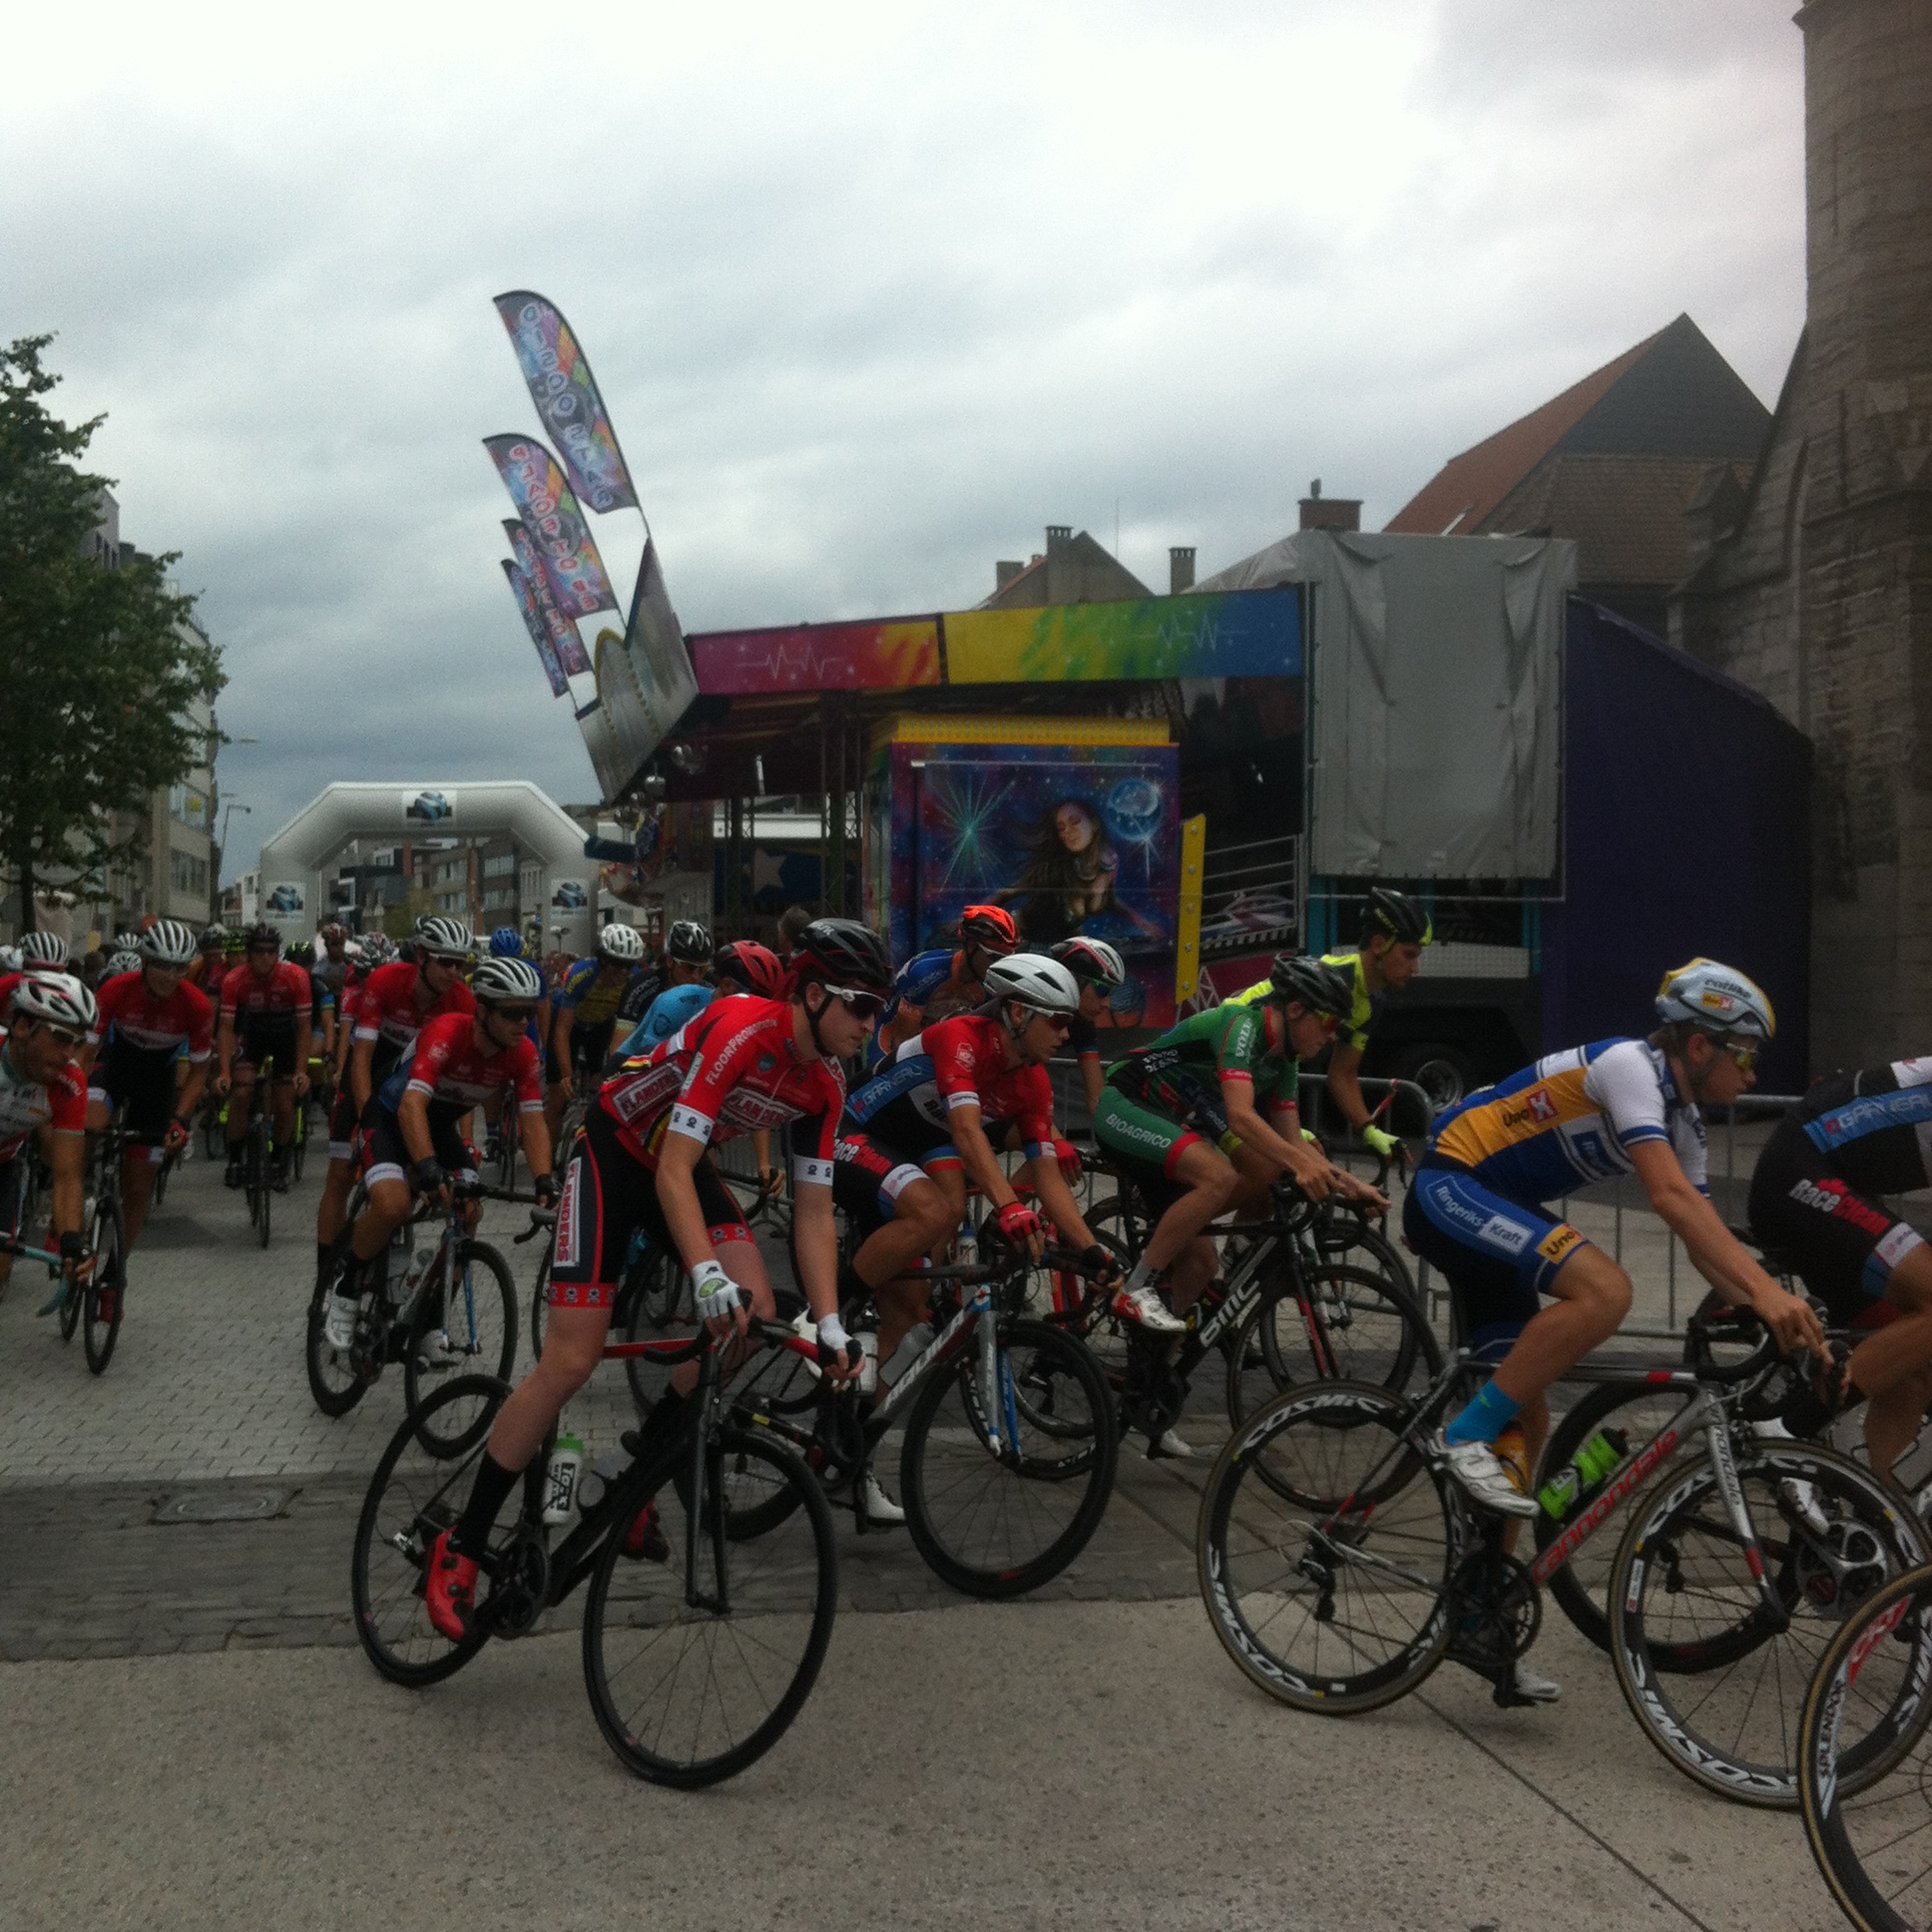 Conor (in red) at the Deinze start, passing the main kermis entertainment tent (beside the Church !)